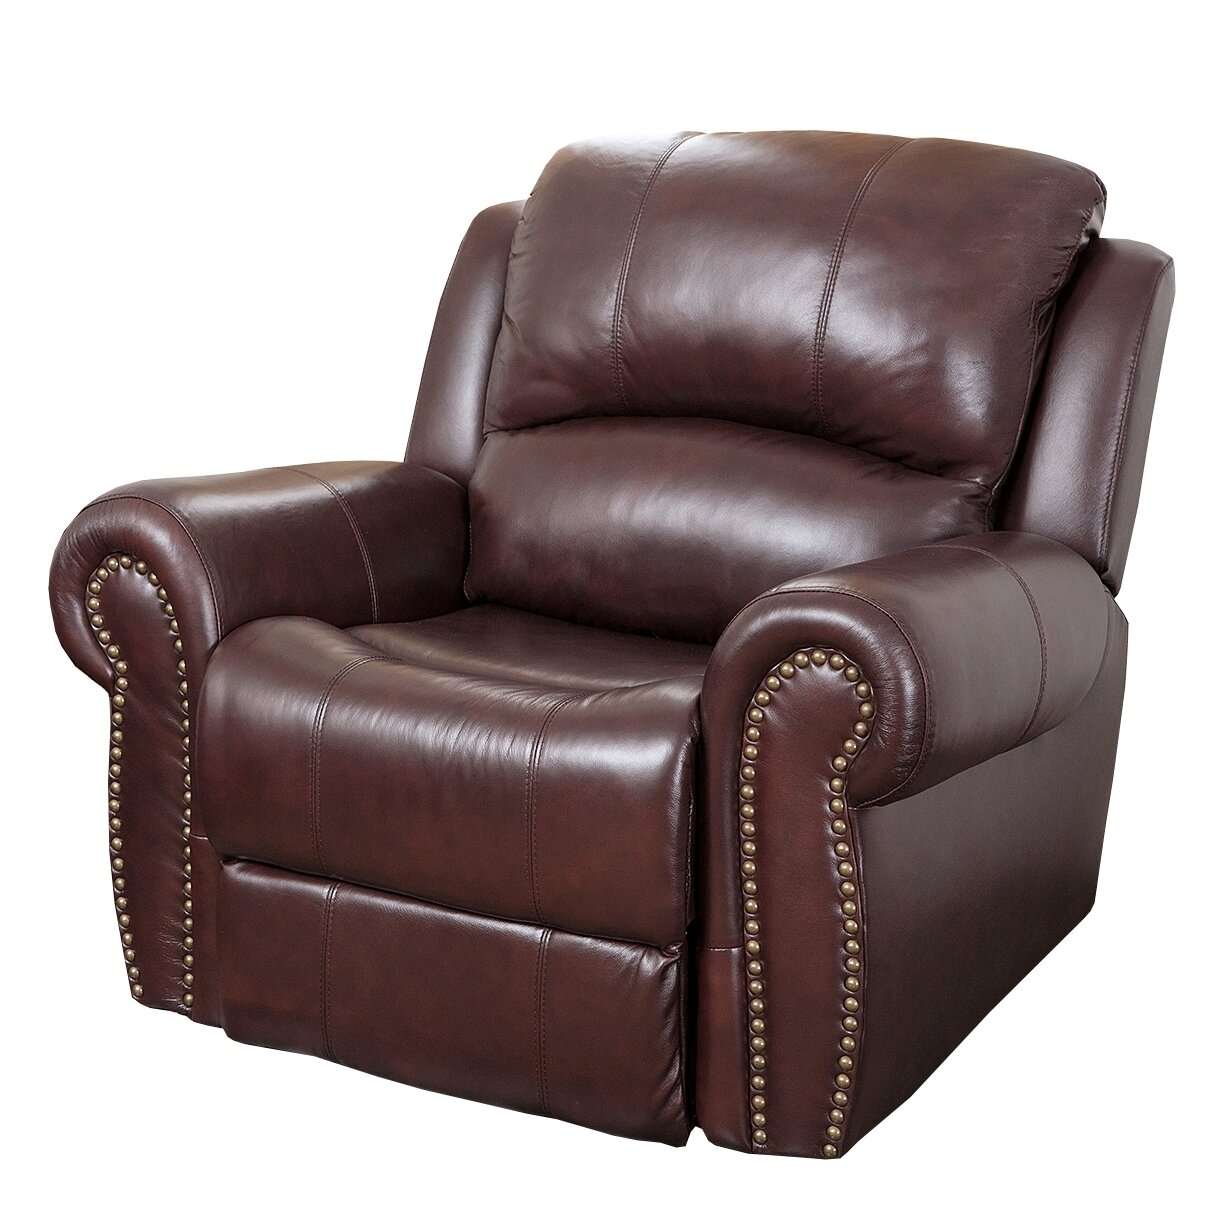 Abbyson Living Sedona Leather Chaise Recliner Amp Reviews